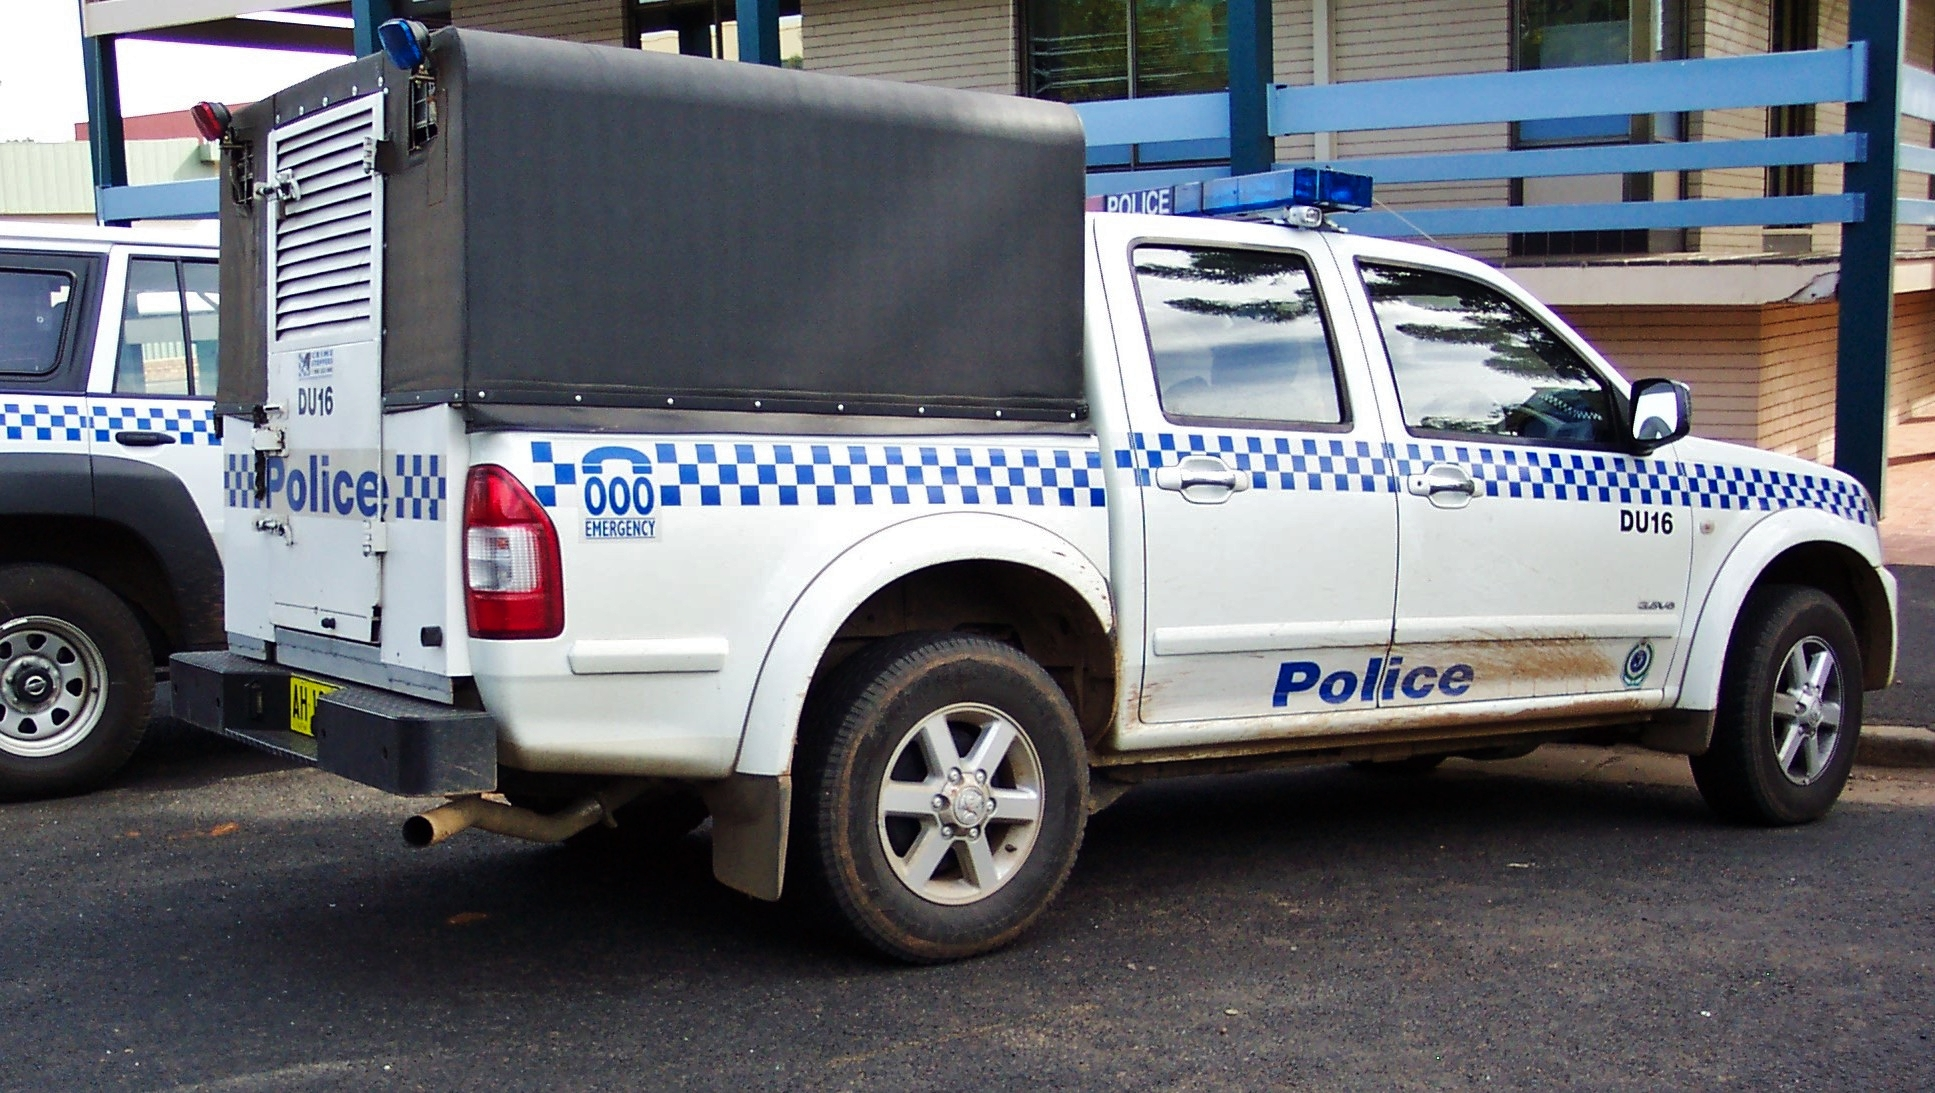 hight resolution of file 2005 holden ra rodeo lt paddy wagon nsw police 5497947675 jpg